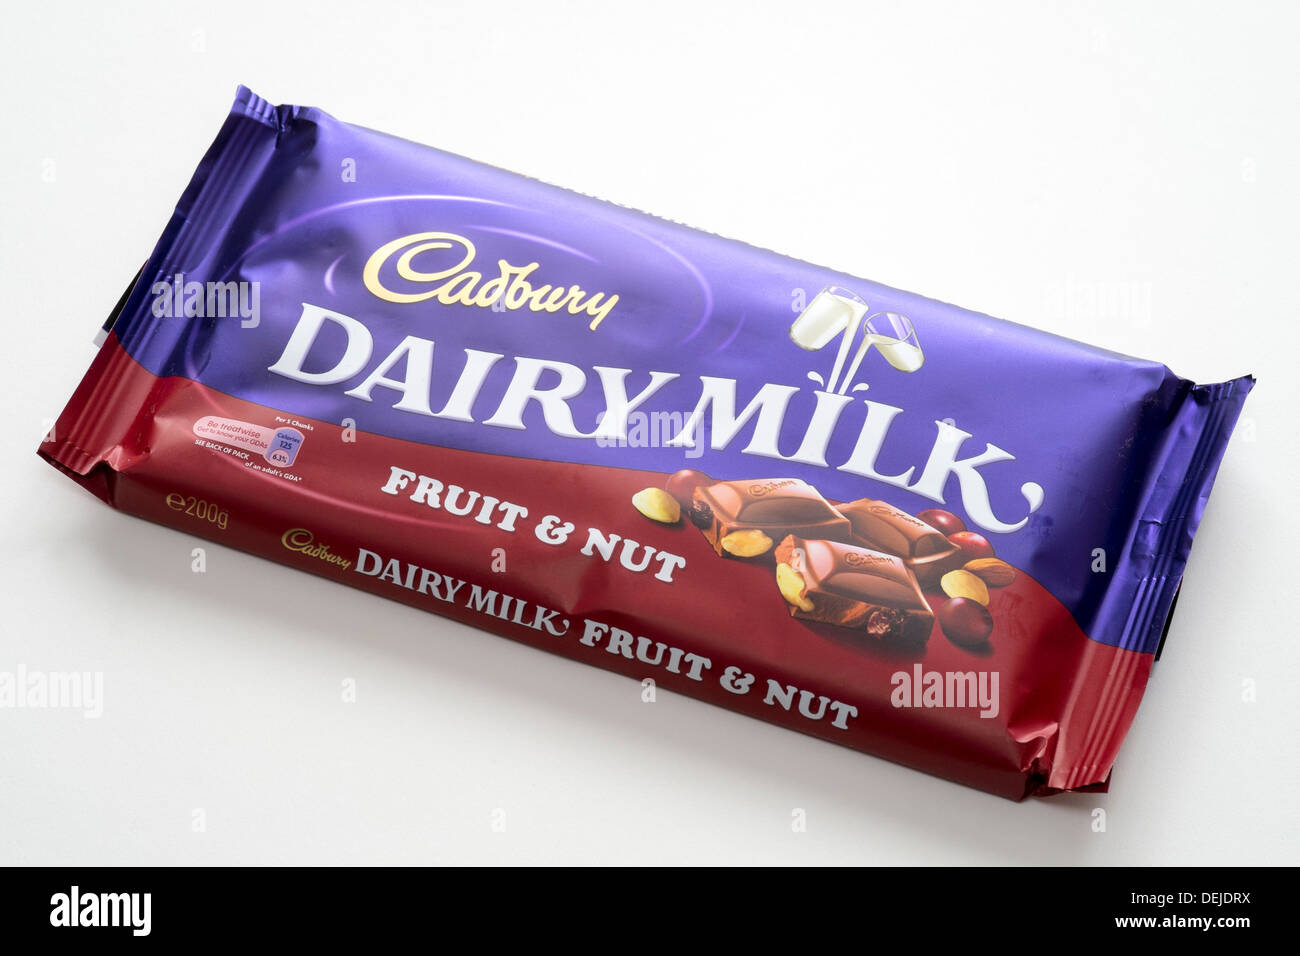 Cadbury Chocolate Bar Wrapper Stock Photos & Cadbury Chocolate Bar ...